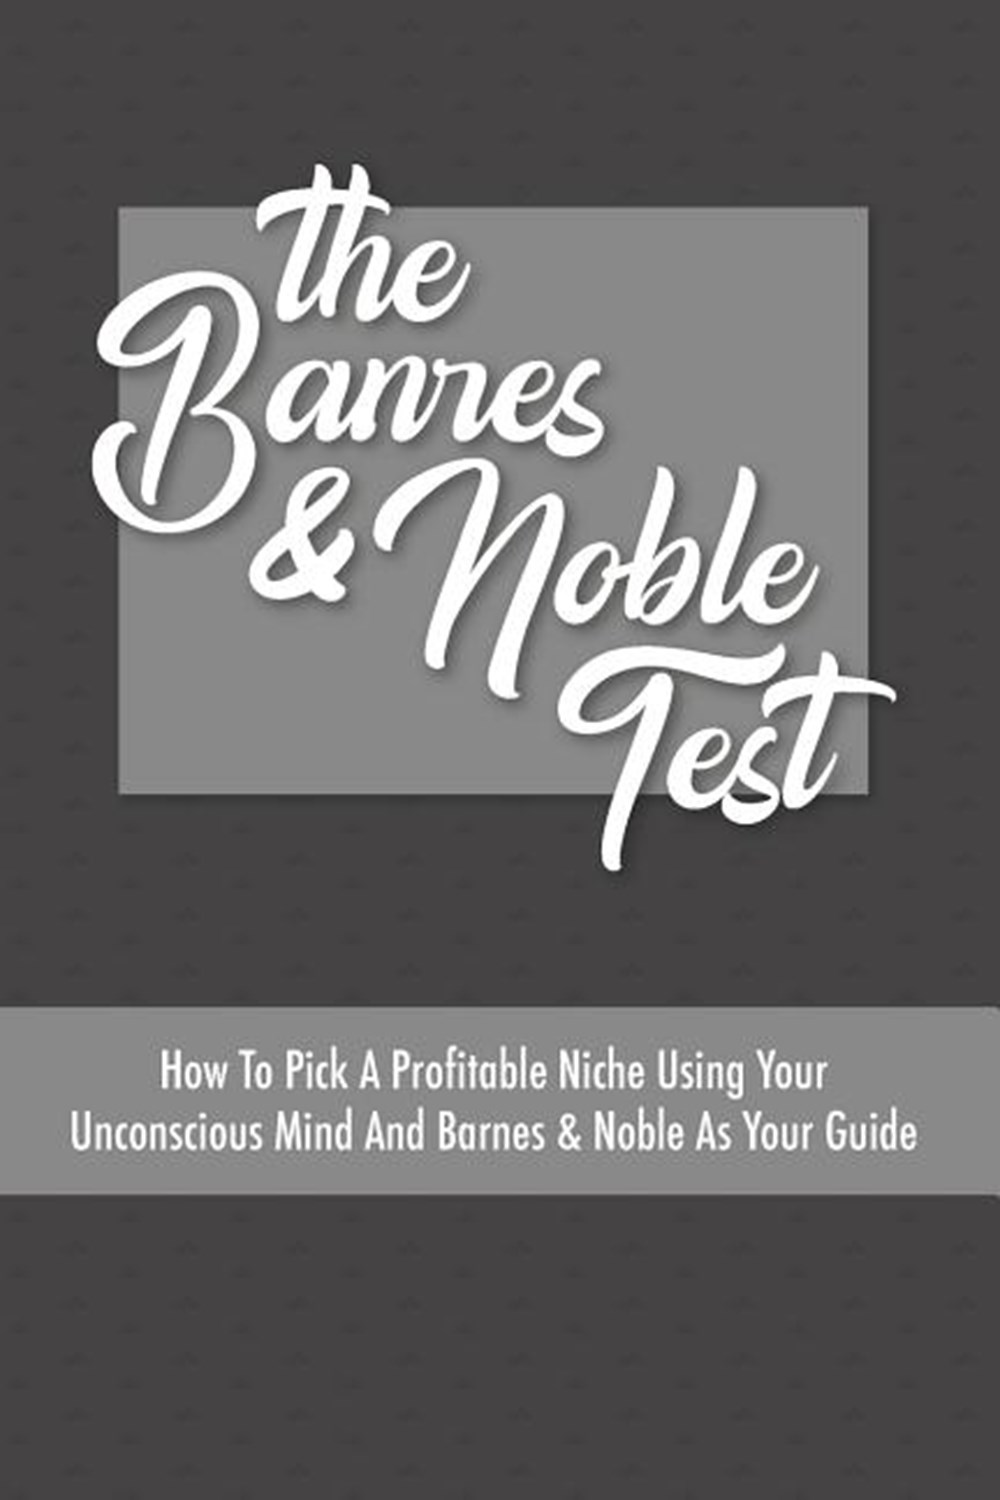 Barnes & Noble Test How To Pick A Profitable Niche Using Your Unconscious Mind And Barnes & Noble As